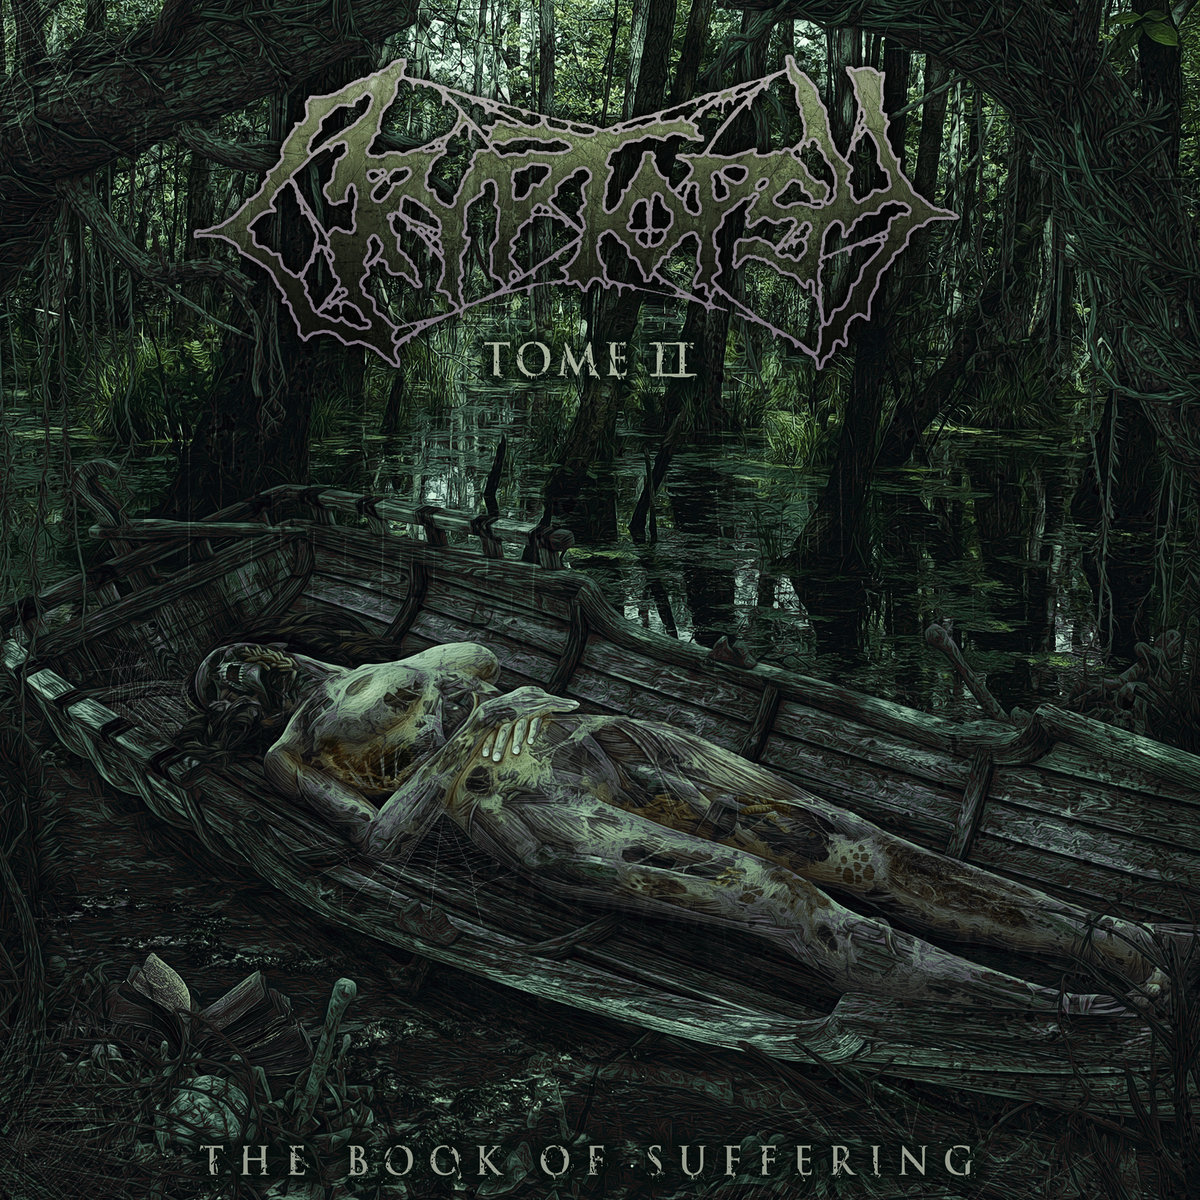 CRYPTOPSY - The Book of Suffering - Tome II cover